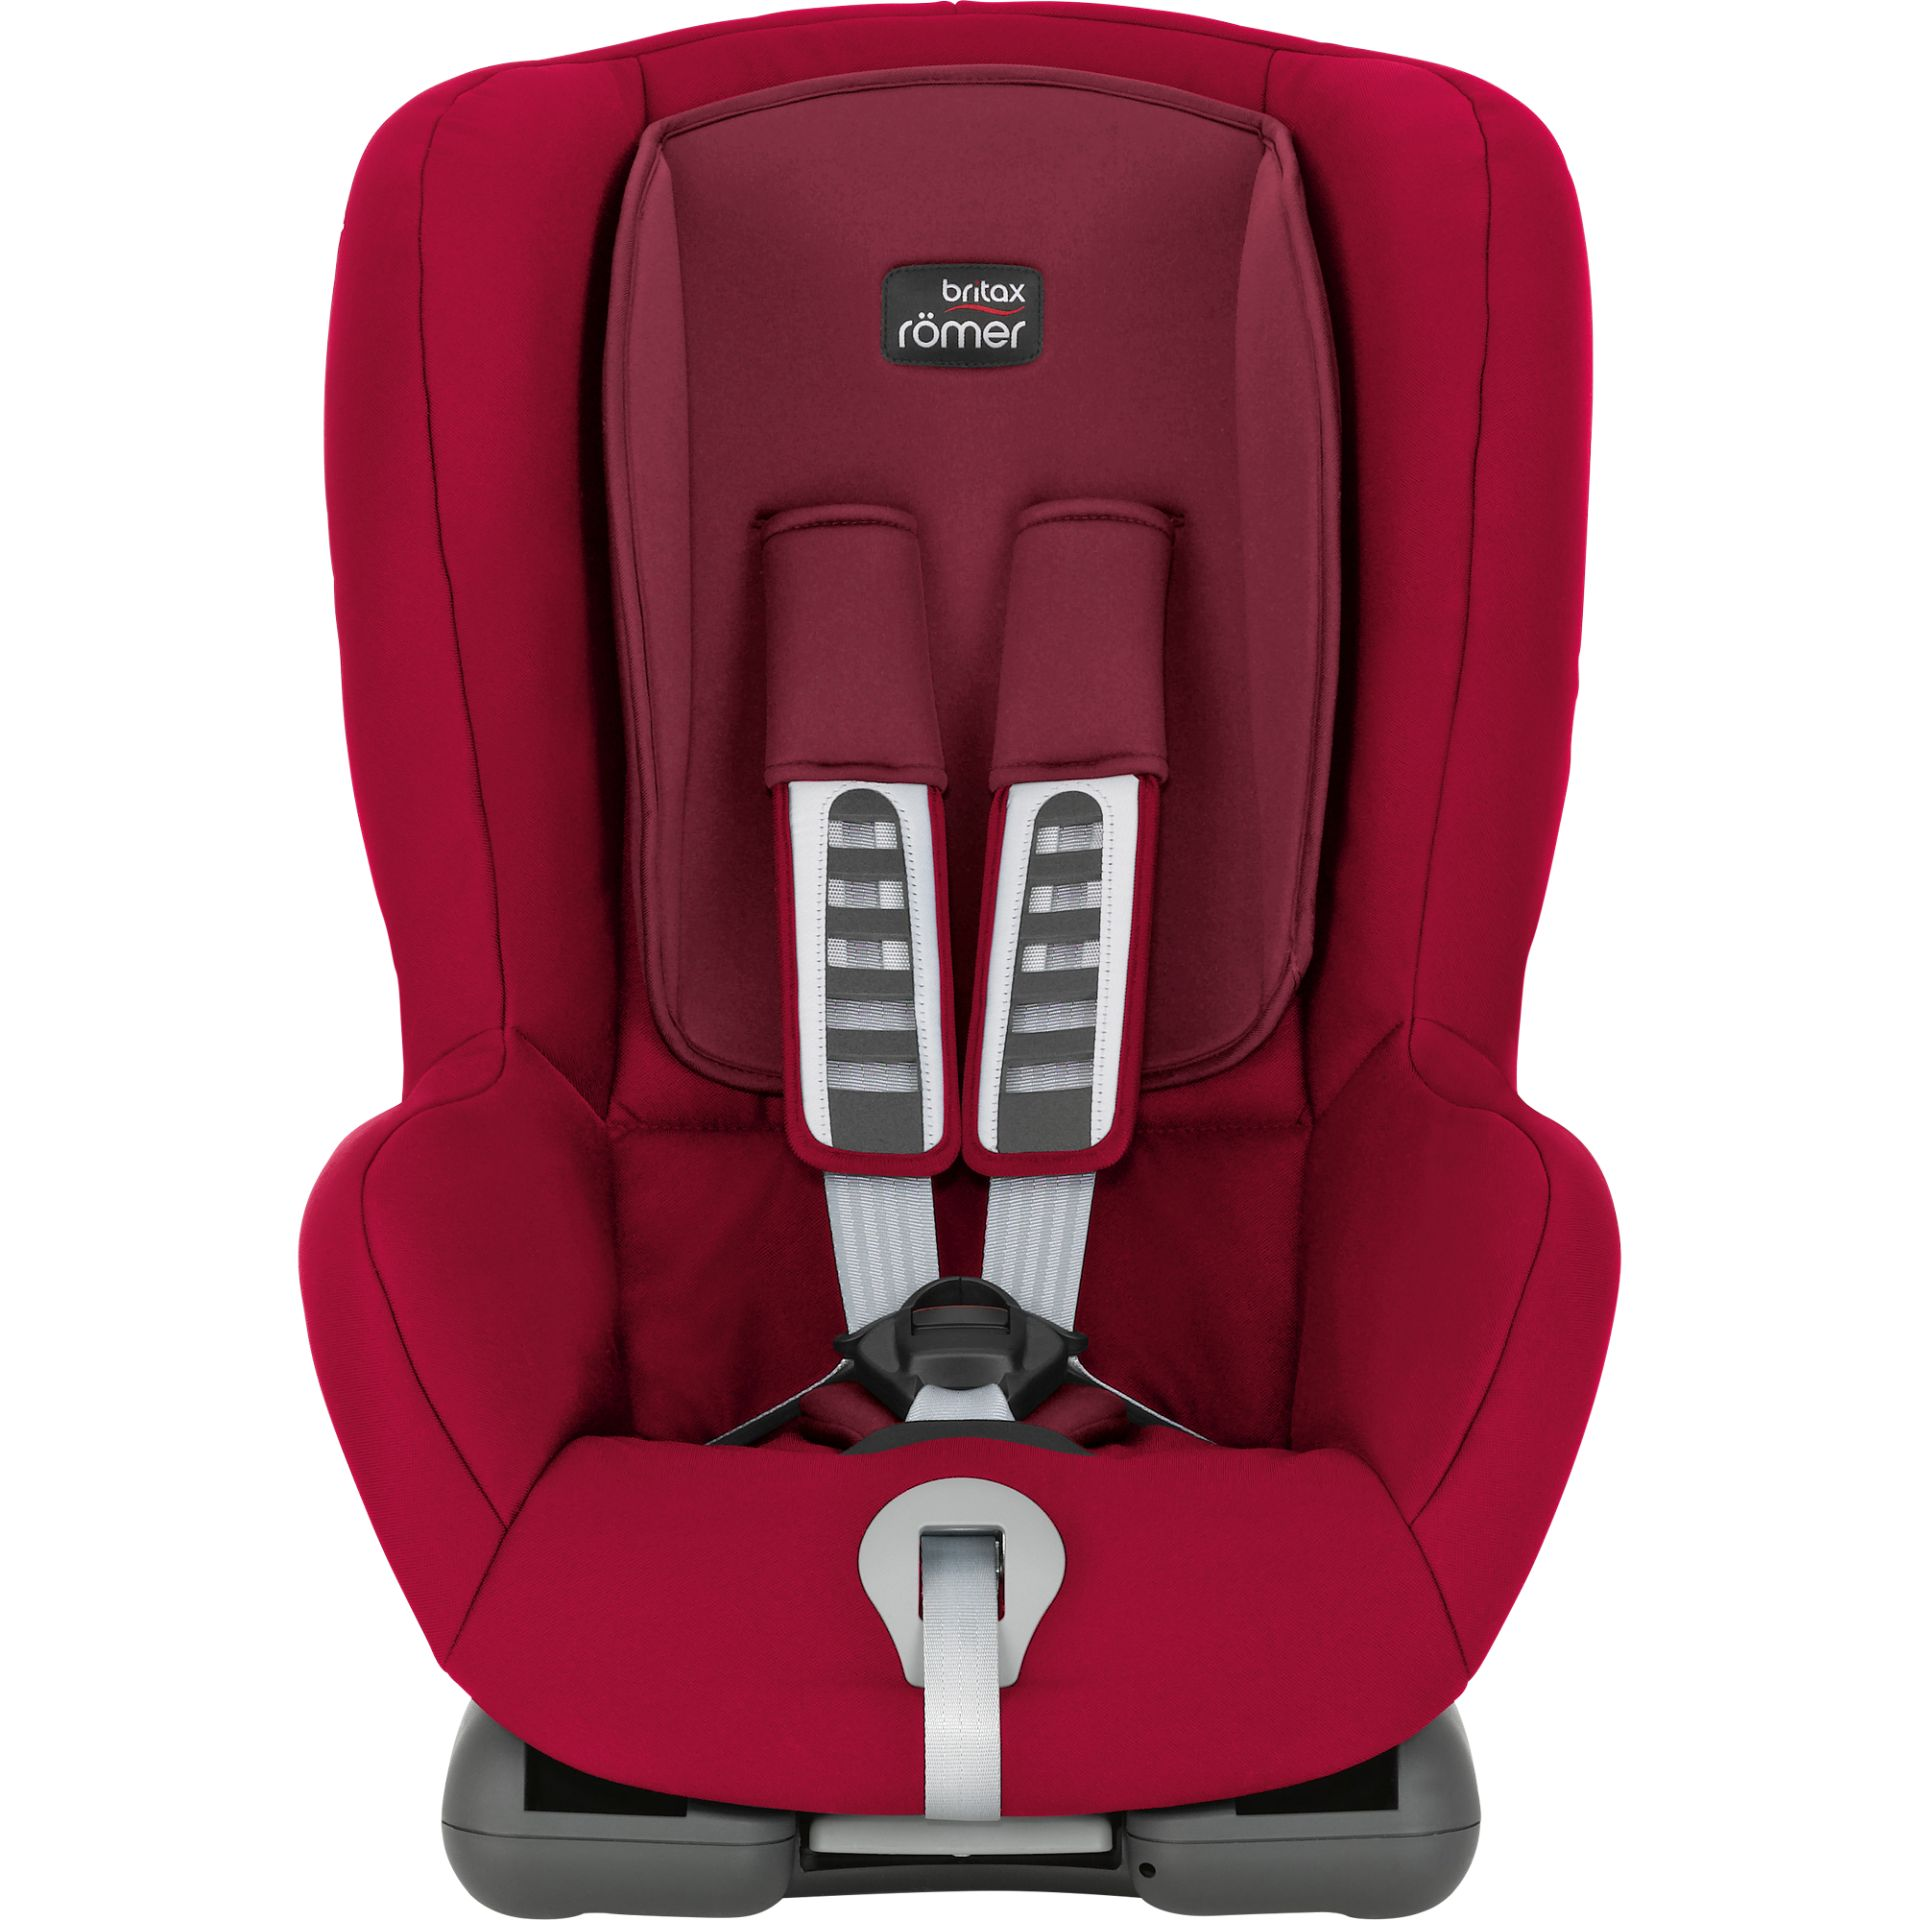 britax r mer car seat duo plus 2018 flame red buy at kidsroom car seats isofix child car seats. Black Bedroom Furniture Sets. Home Design Ideas